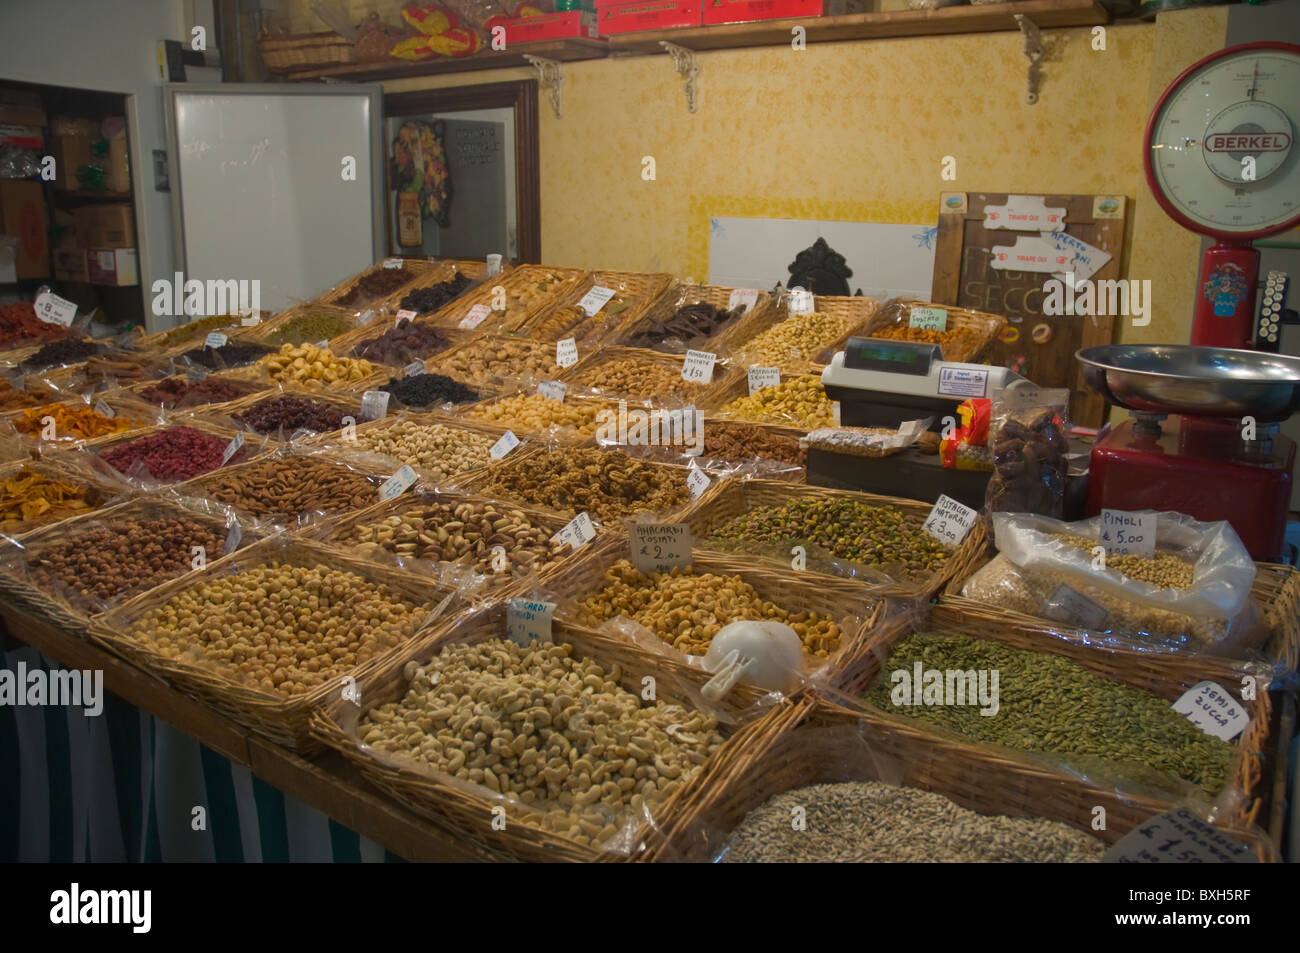 Nuts stall Mercato Centrale the central market Florence (Firenze) Tuscany central Italy Europe - Stock Image